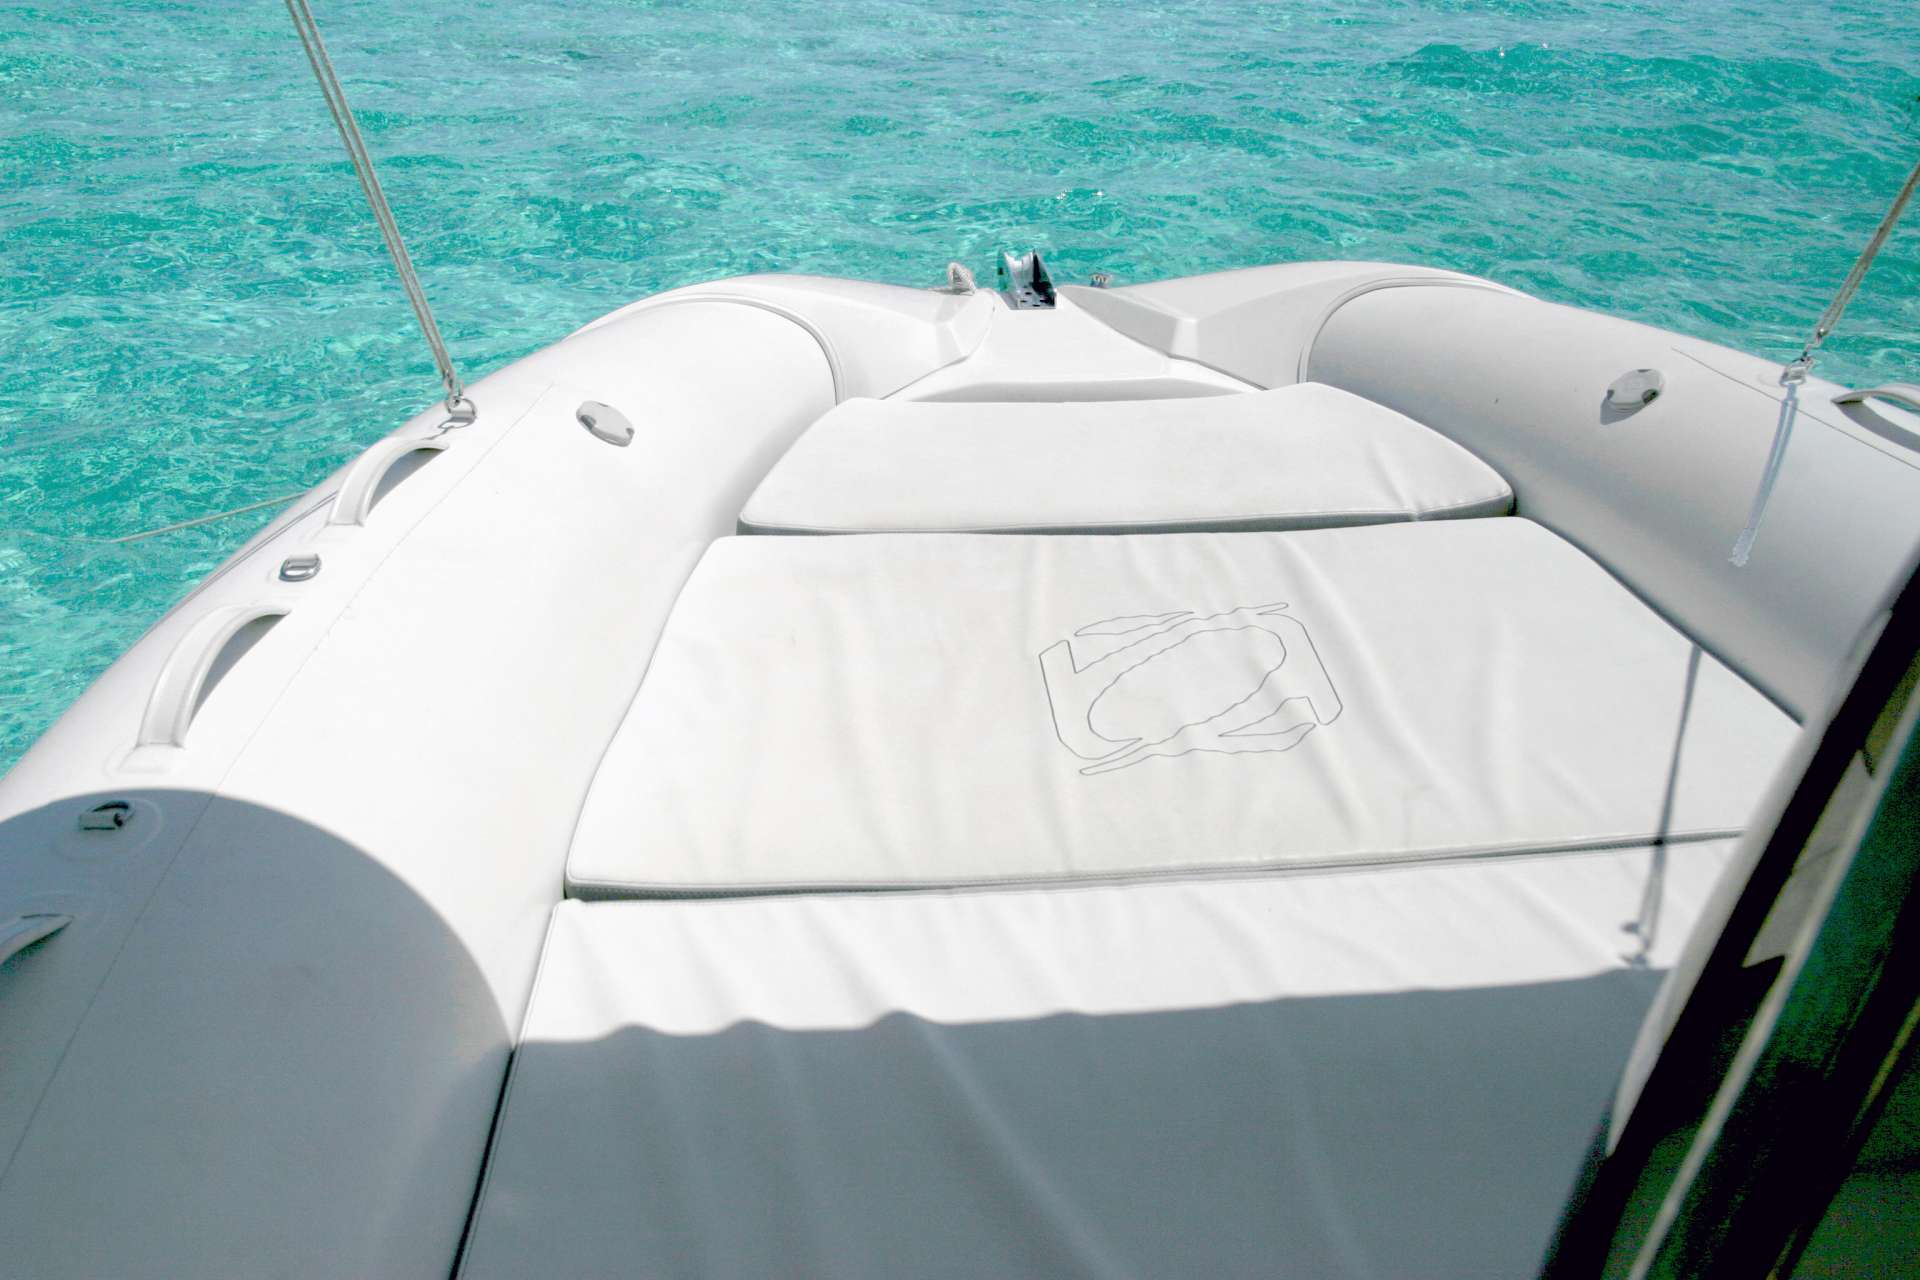 Discover the Formentera Island with this comfortable inflatable rib in Ibiza!